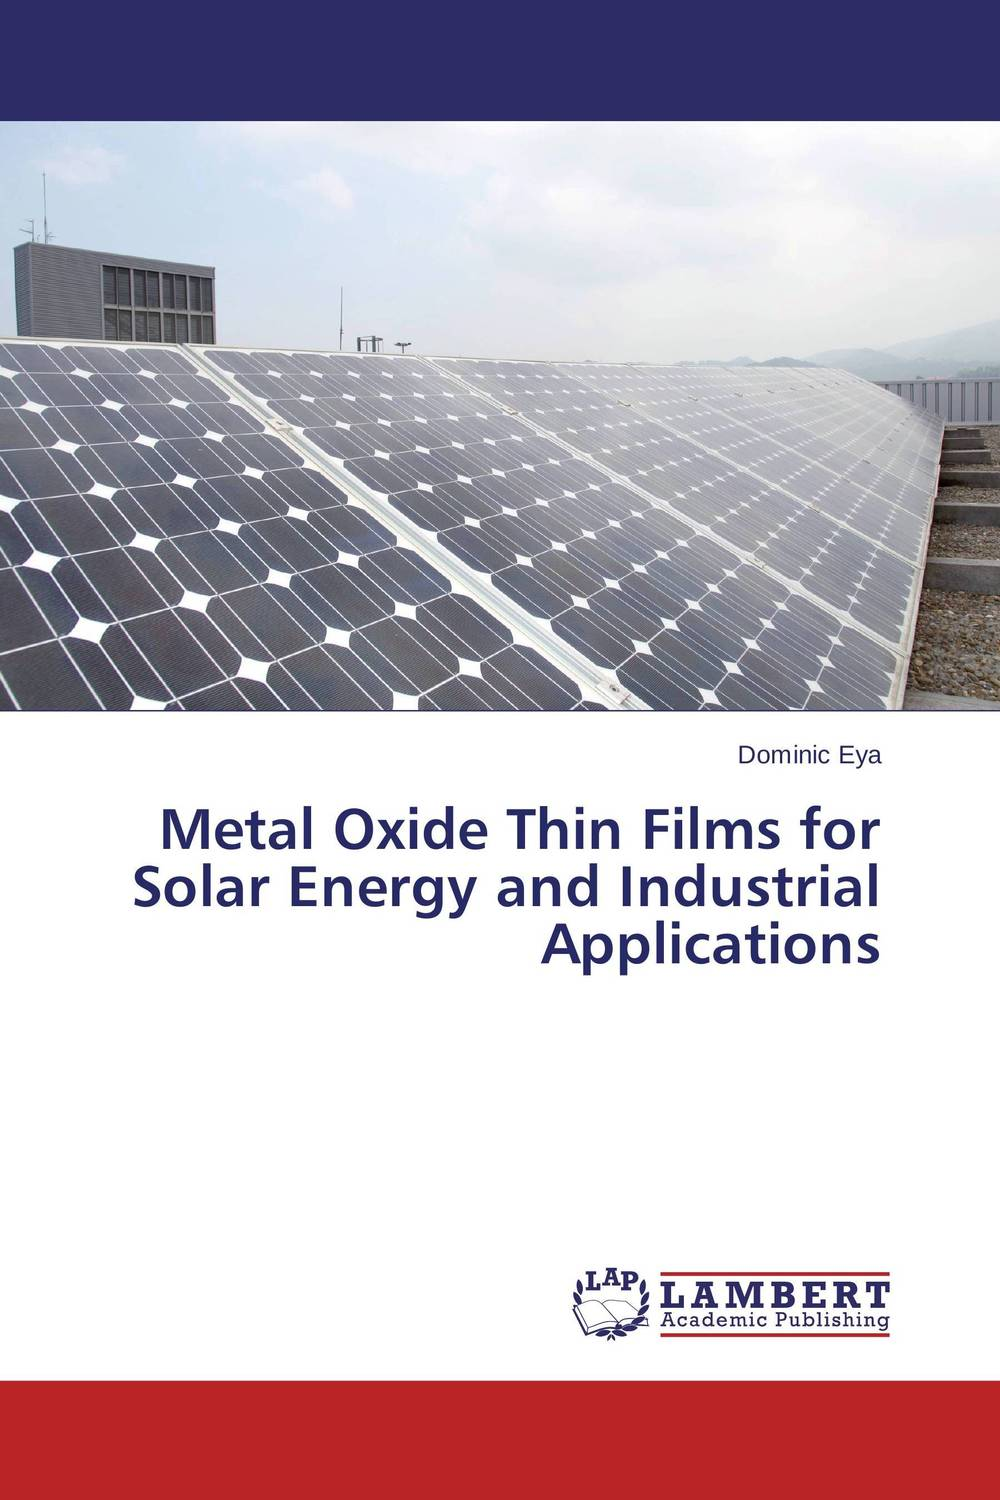 Metal Oxide Thin Films for Solar Energy and Industrial Applications